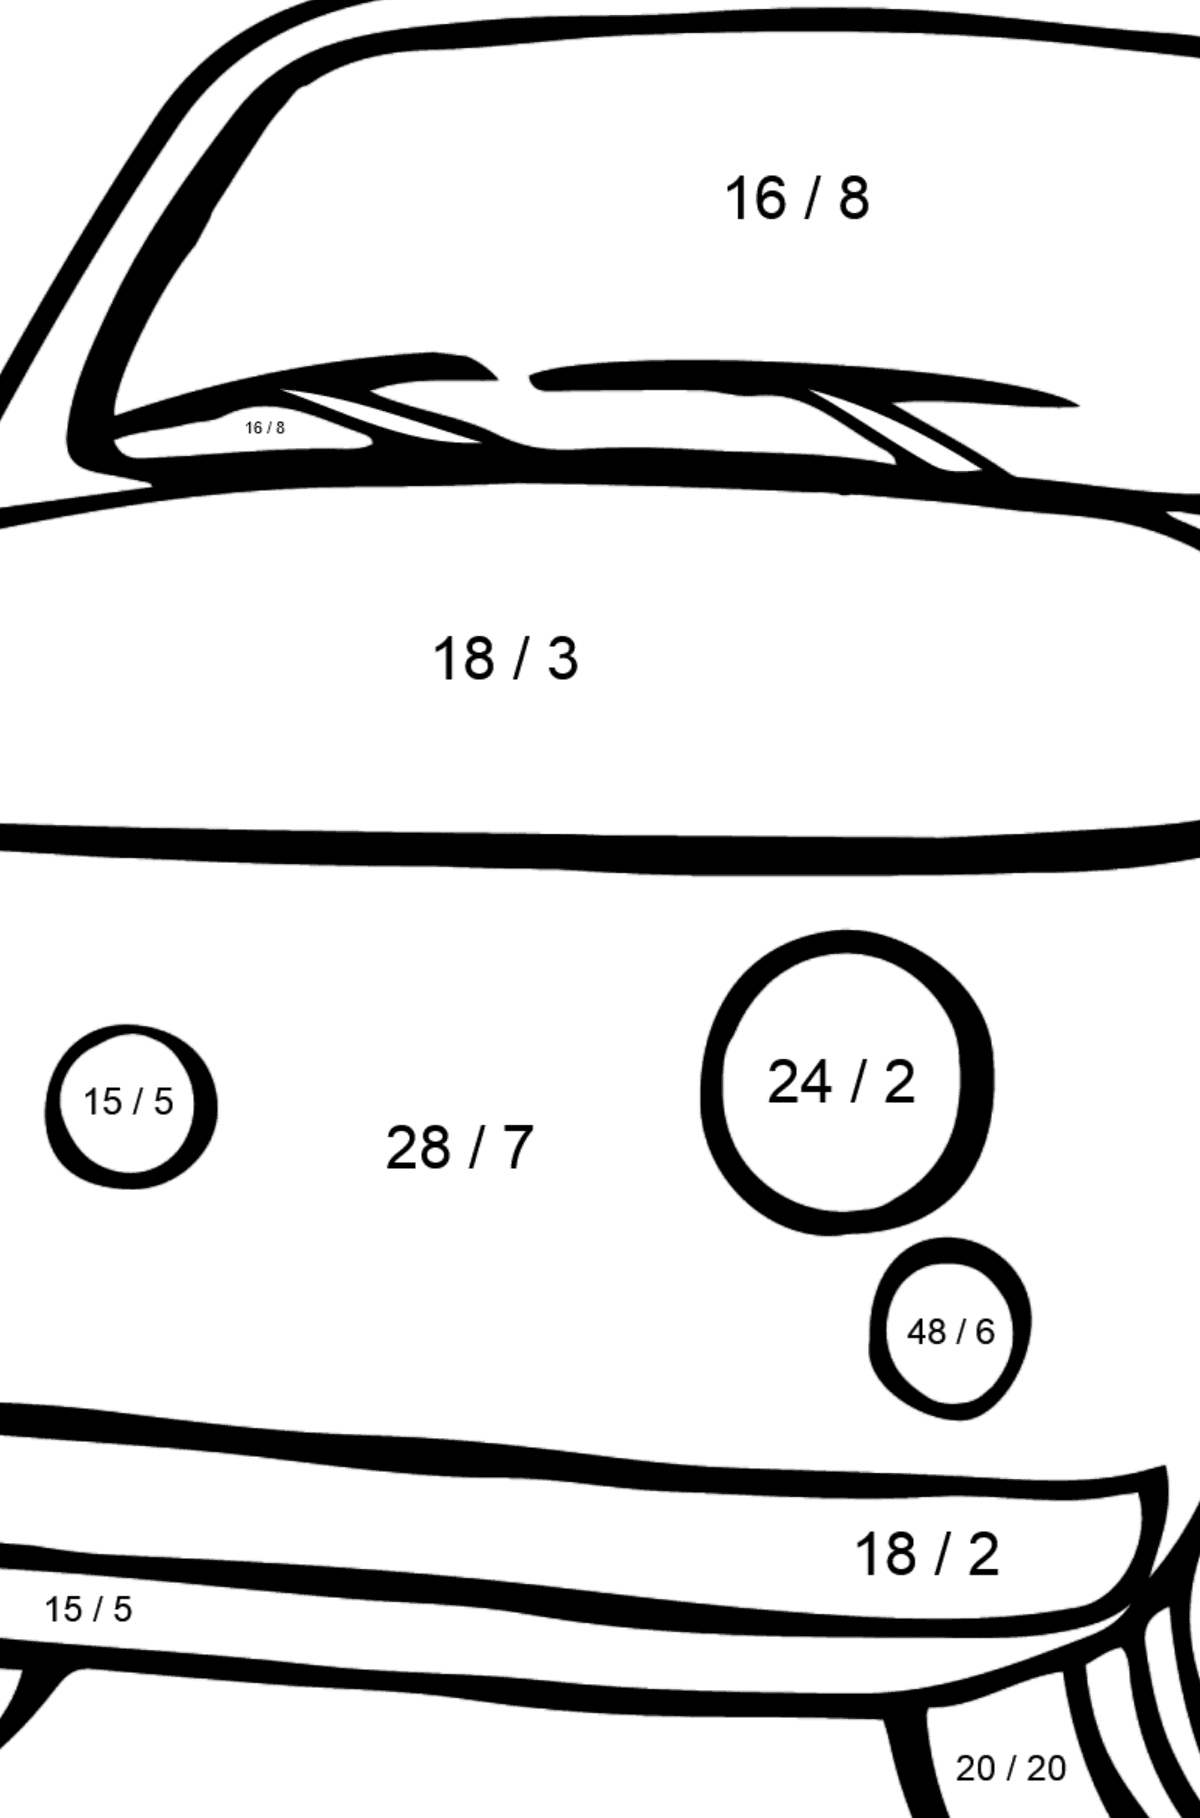 Fiat 500 (red car) coloring page - Math Coloring - Division for Kids